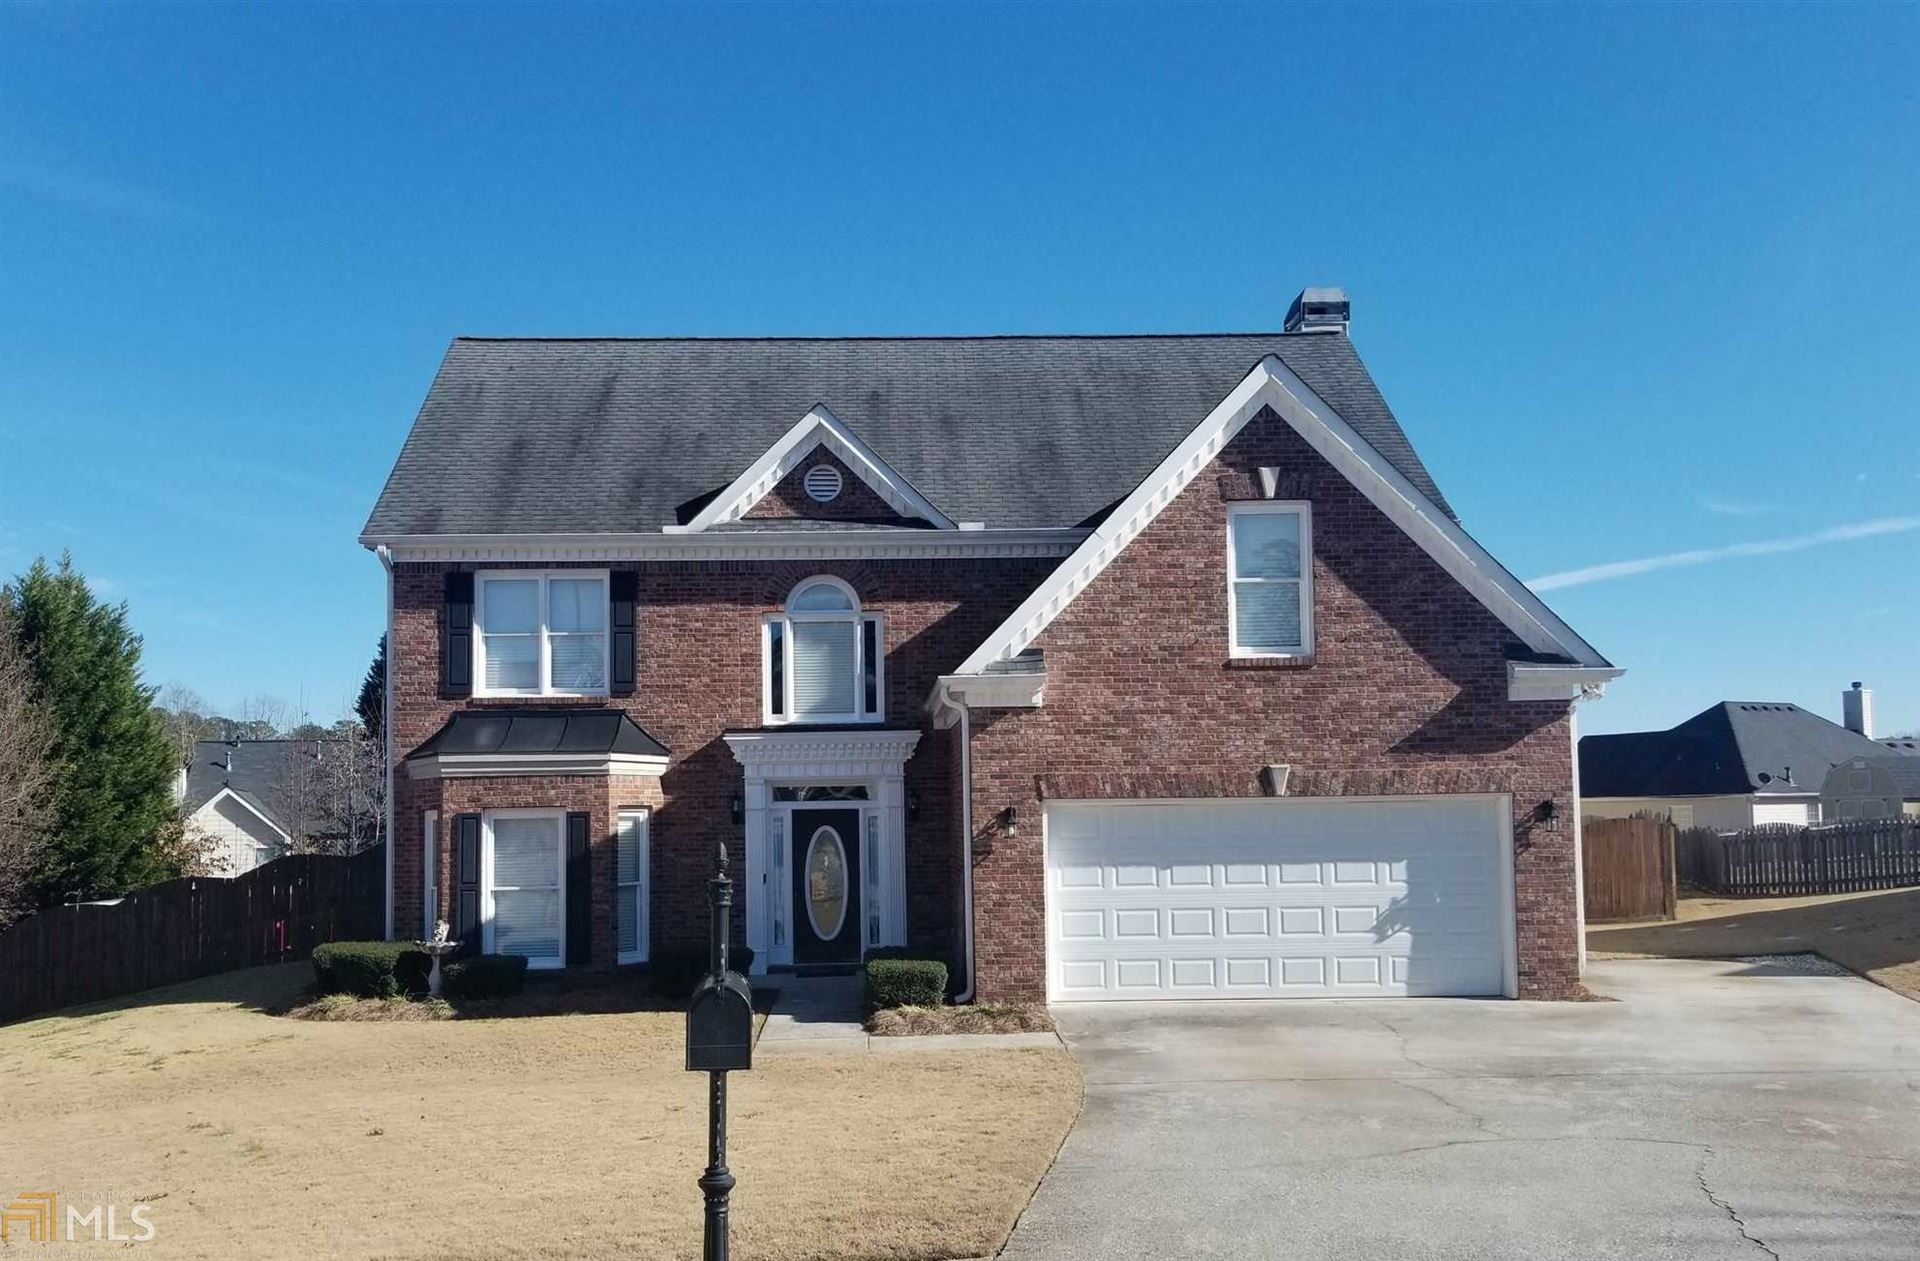 600 Wellbrook Ct, Loganville, GA 30052 - MLS#: 8907398